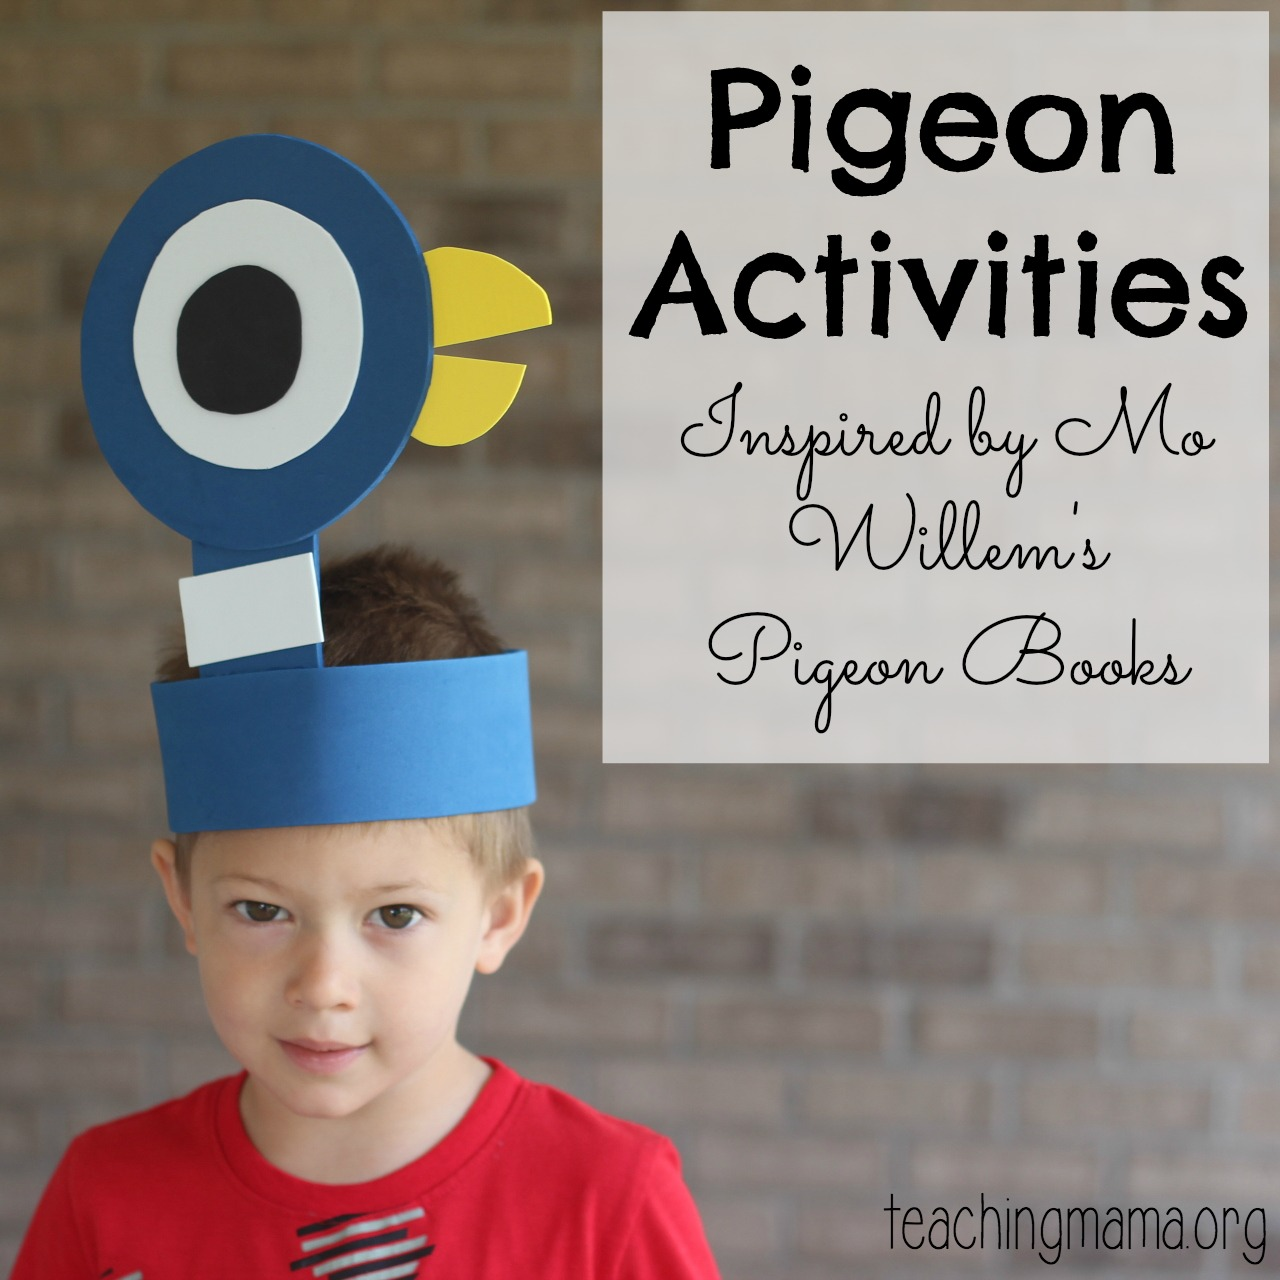 Pigeon Activities - FB